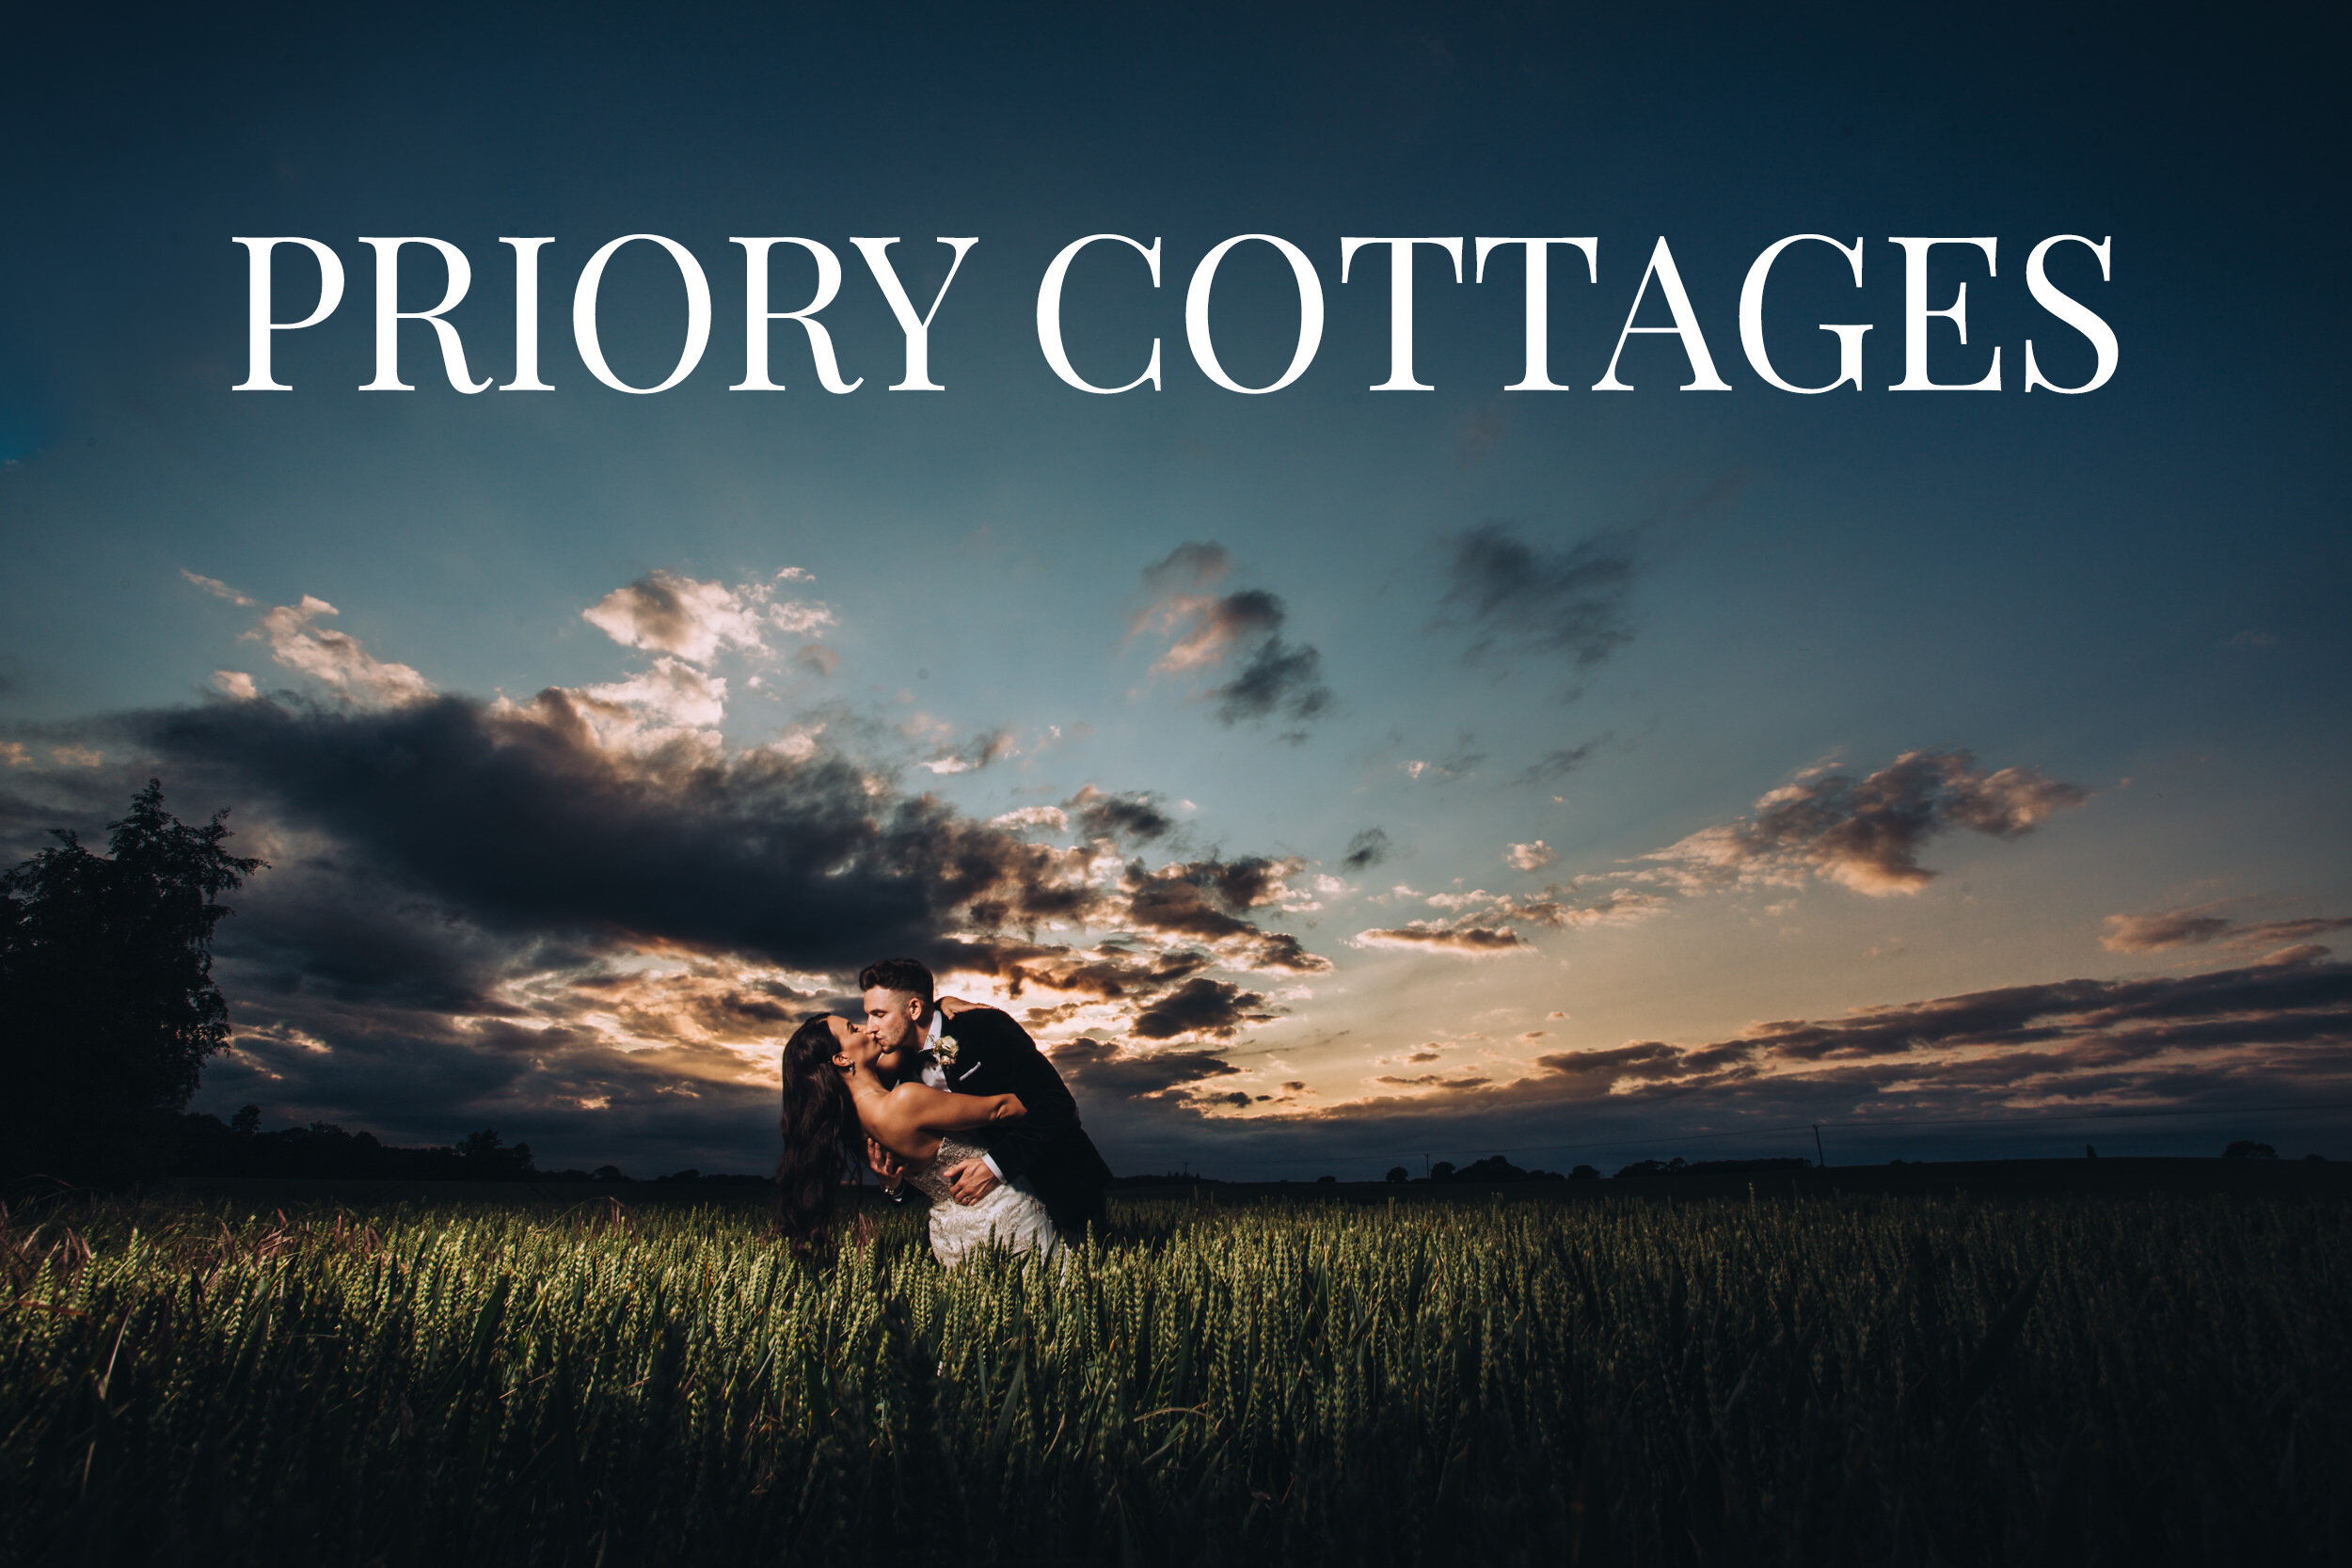 priory cottages Wetherby wedding photographers Yorkshire